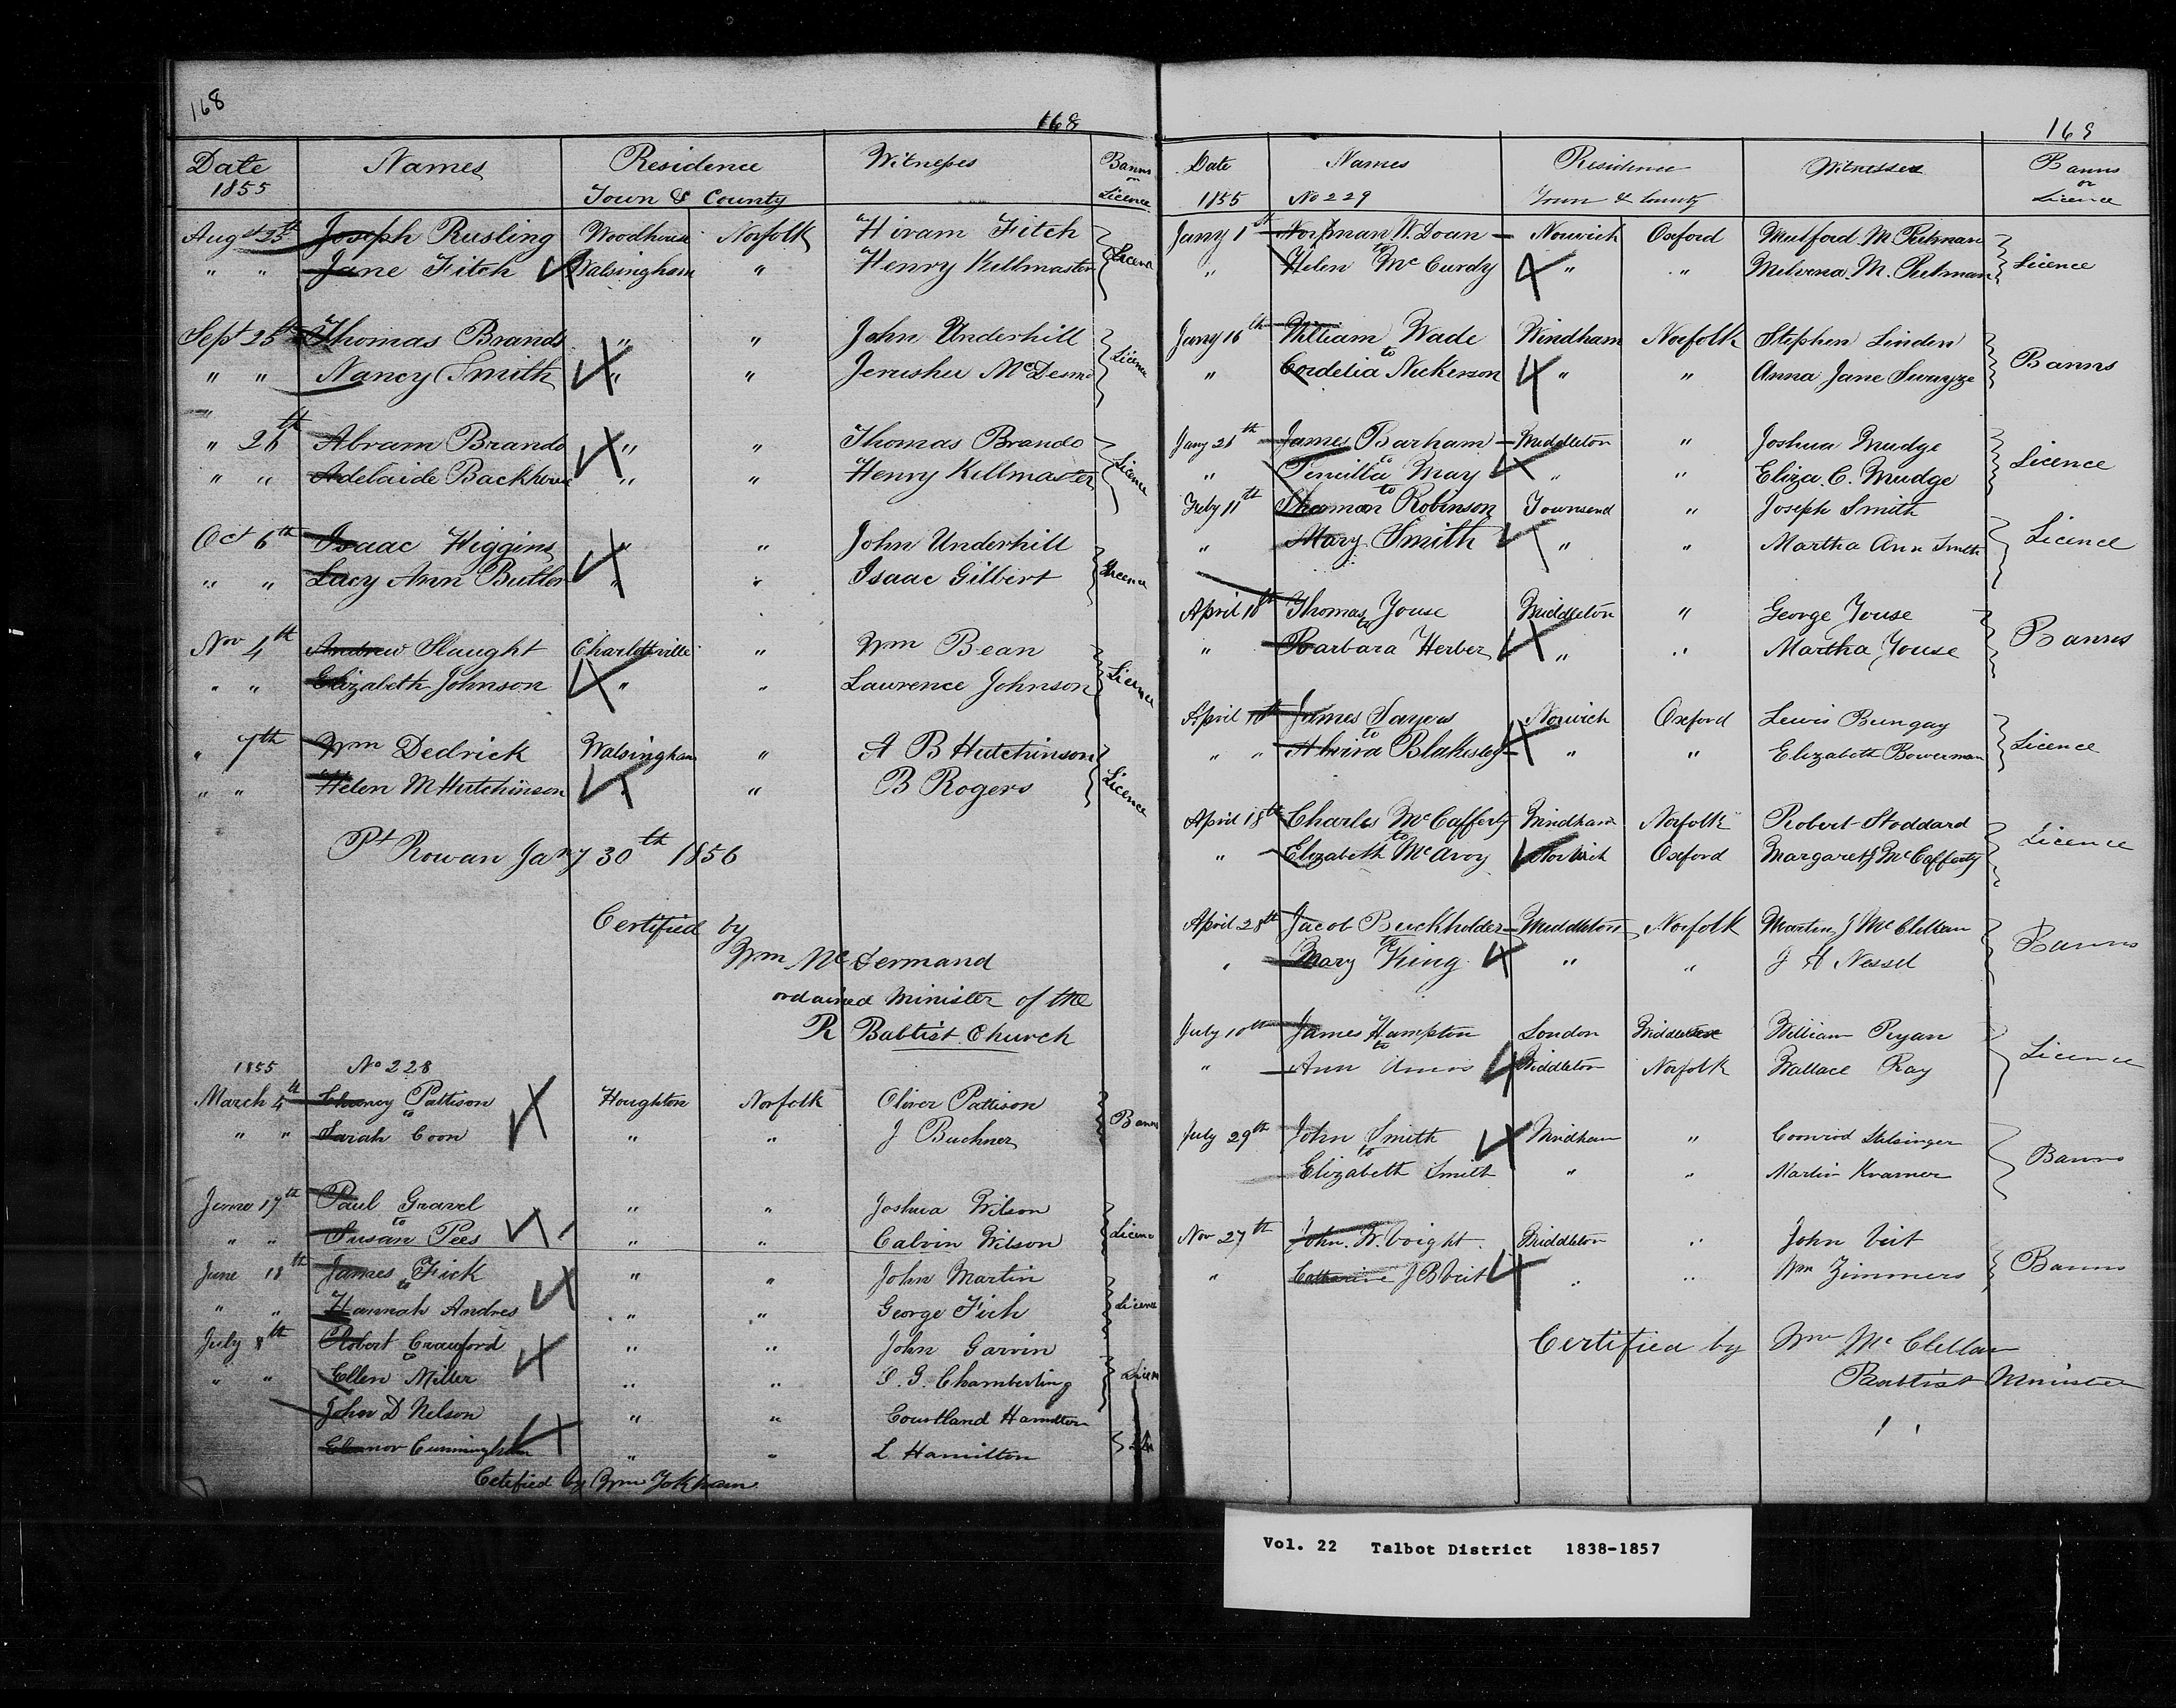 Marriage Registers showing his marriage to Elvira